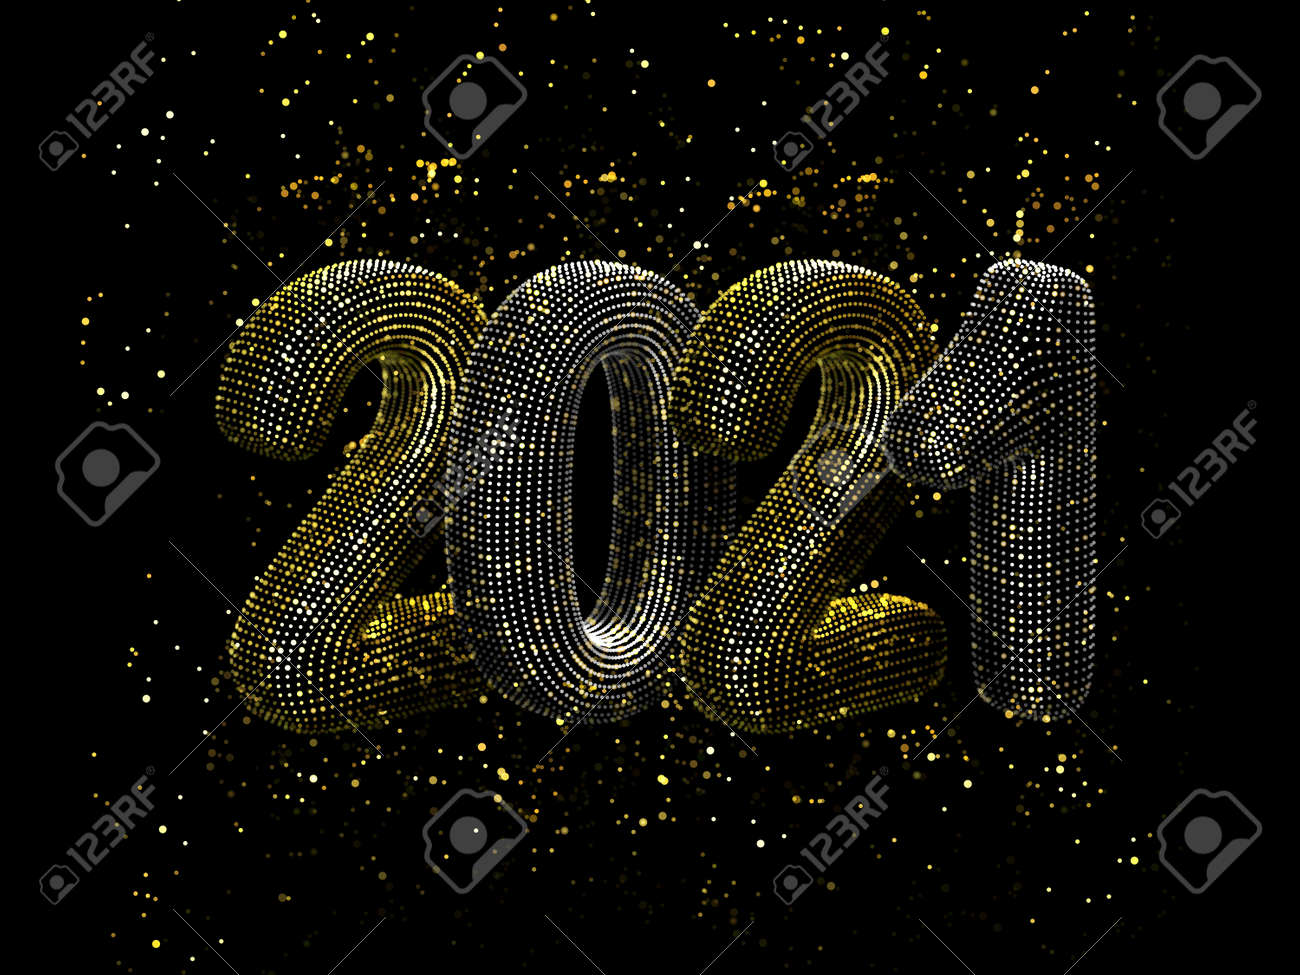 Happy New Year greeting glamorous postcard: 3D gold and silver text 2021 with shiny golden sparkles on black background. Concept of 2021 New Year celebration. New Year festive vector illustration. - 157402443